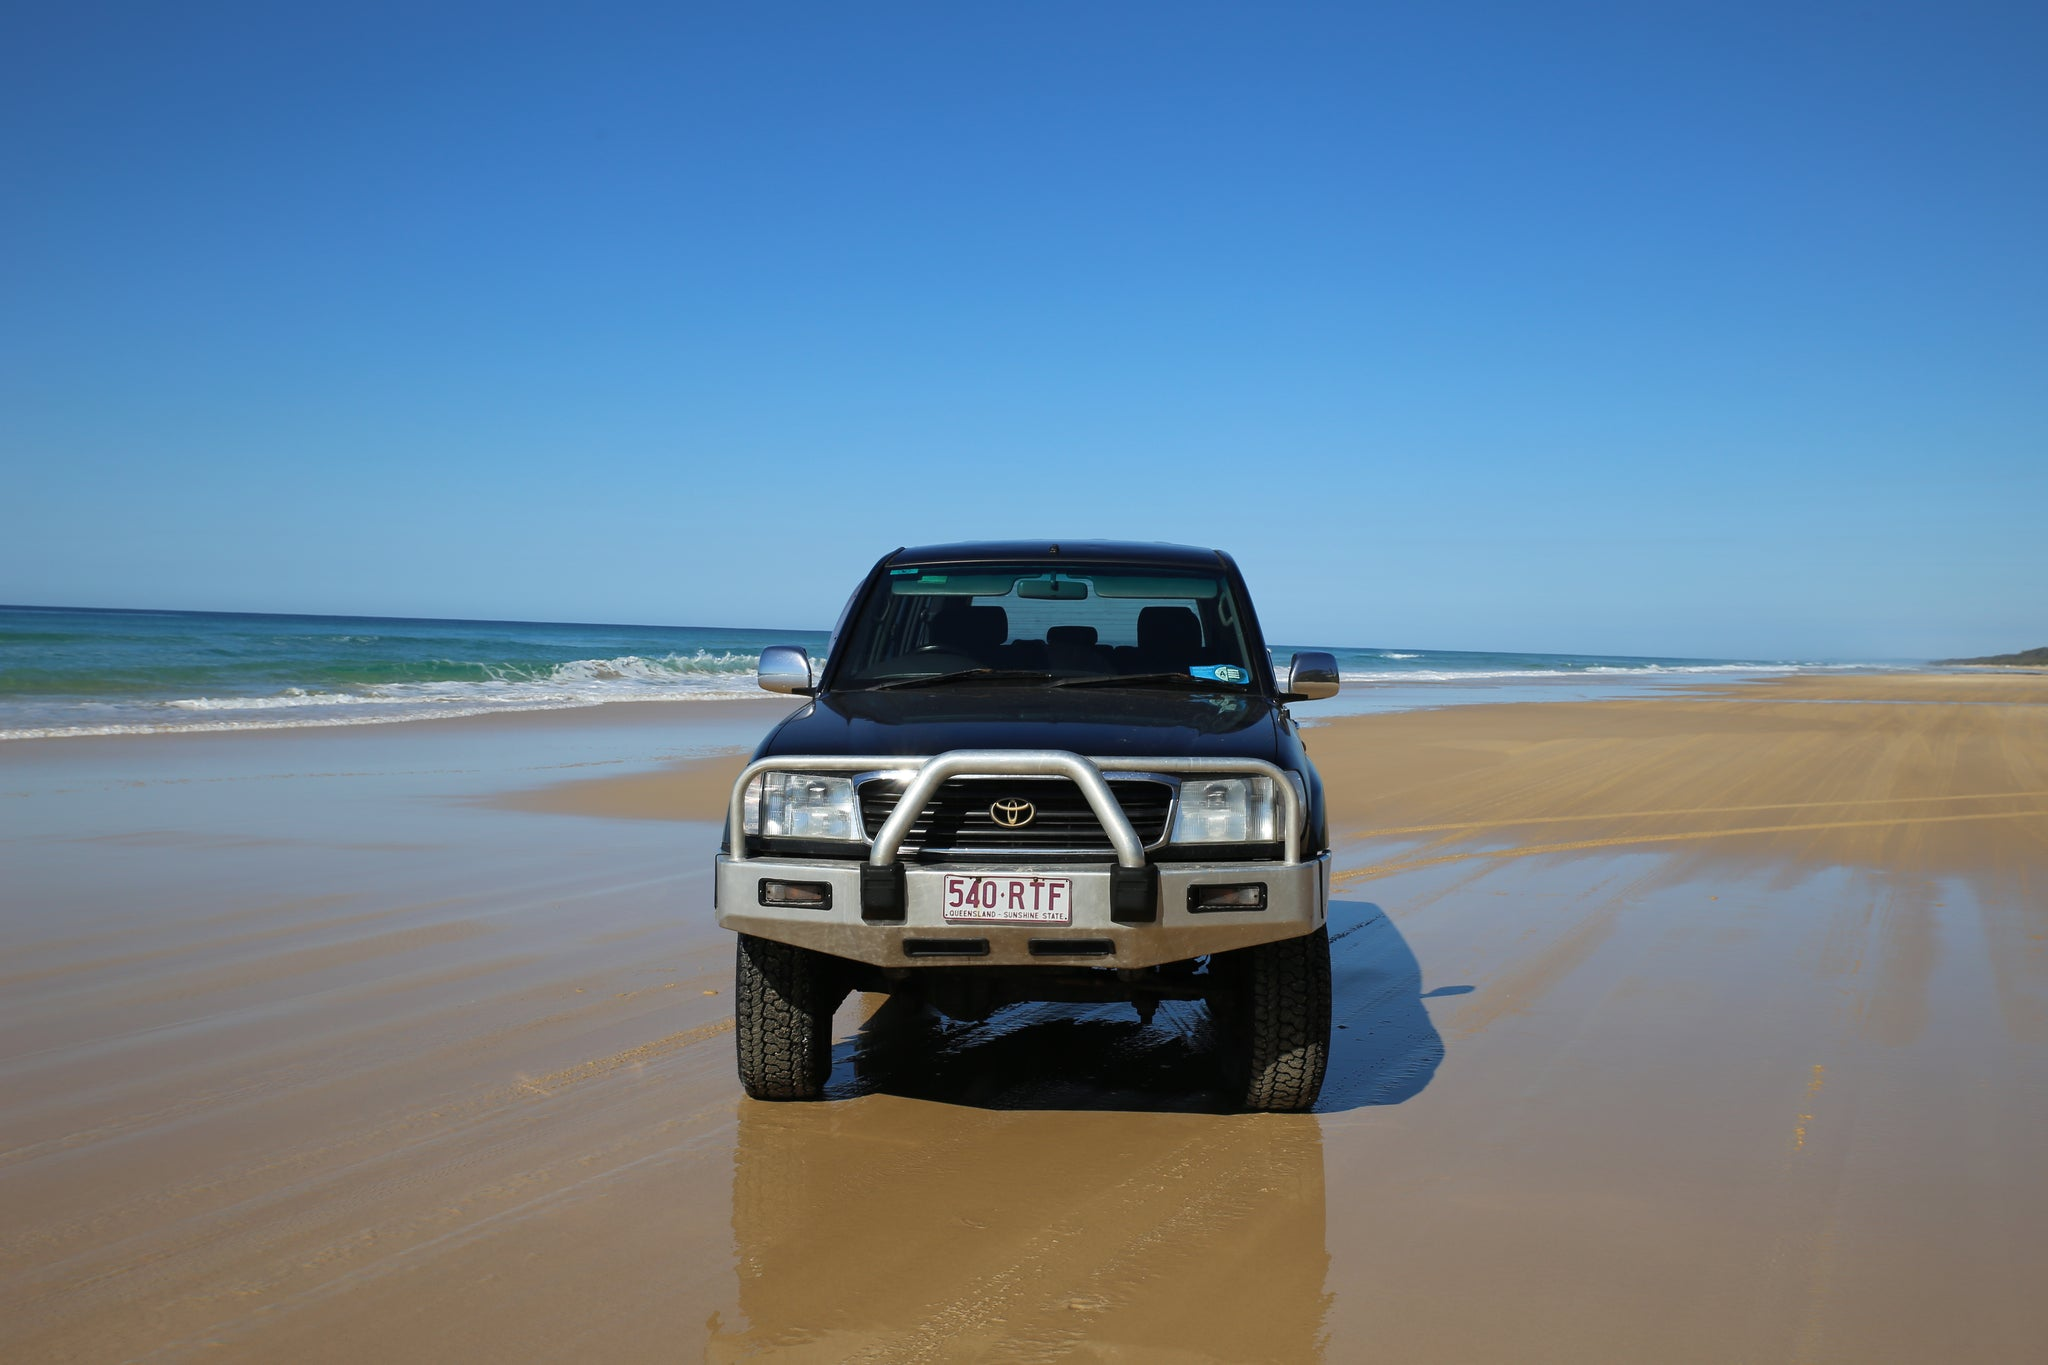 Fraser Island beach with Landcruiser 100